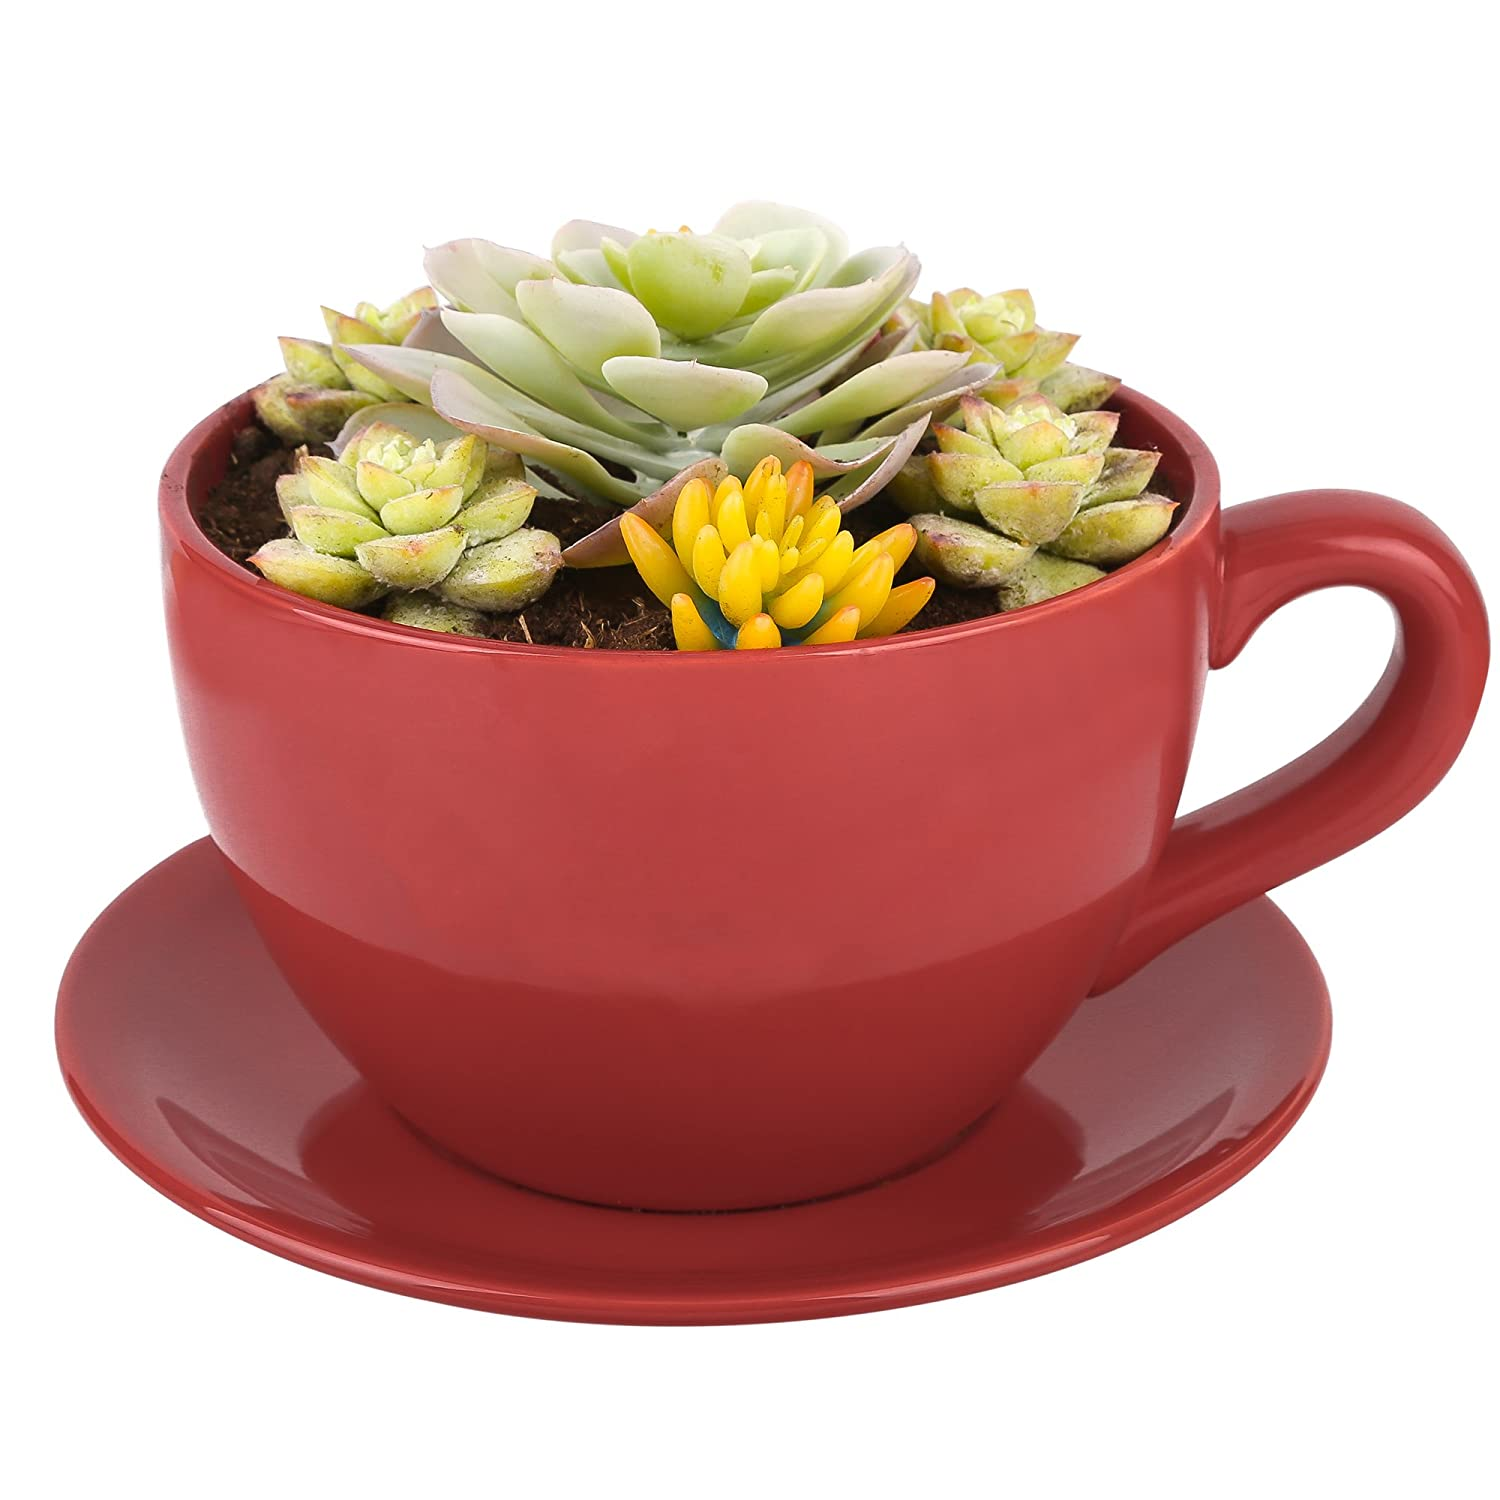 Lifestyle Porcelain Coffee Cup Saucer Shaped Garden Office Flower